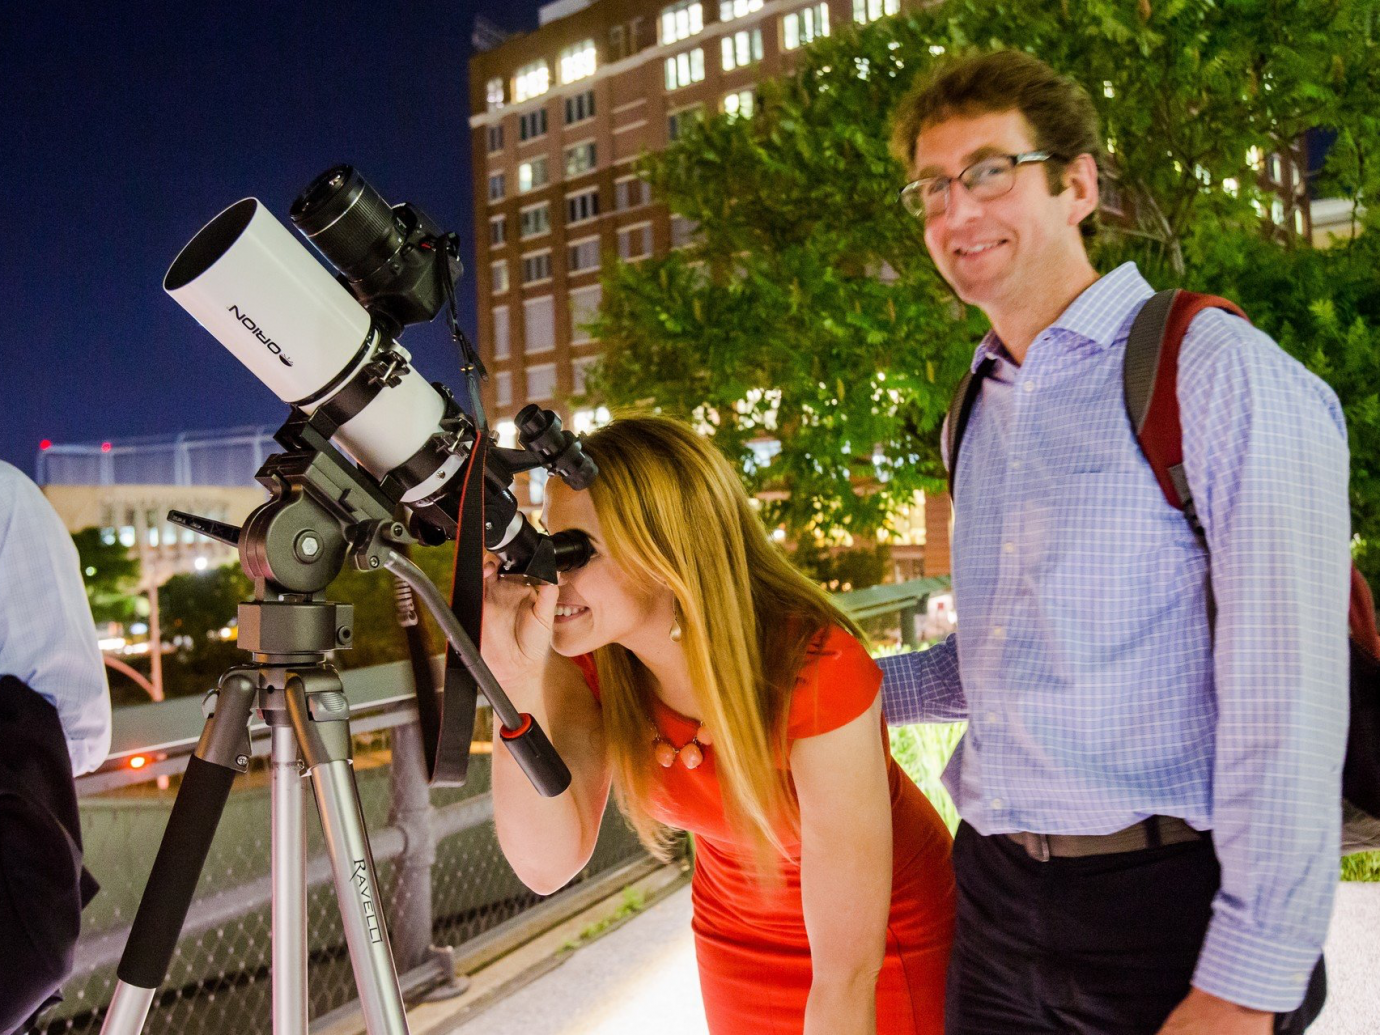 A man and woman using a telescope at night at The High Line in NYC